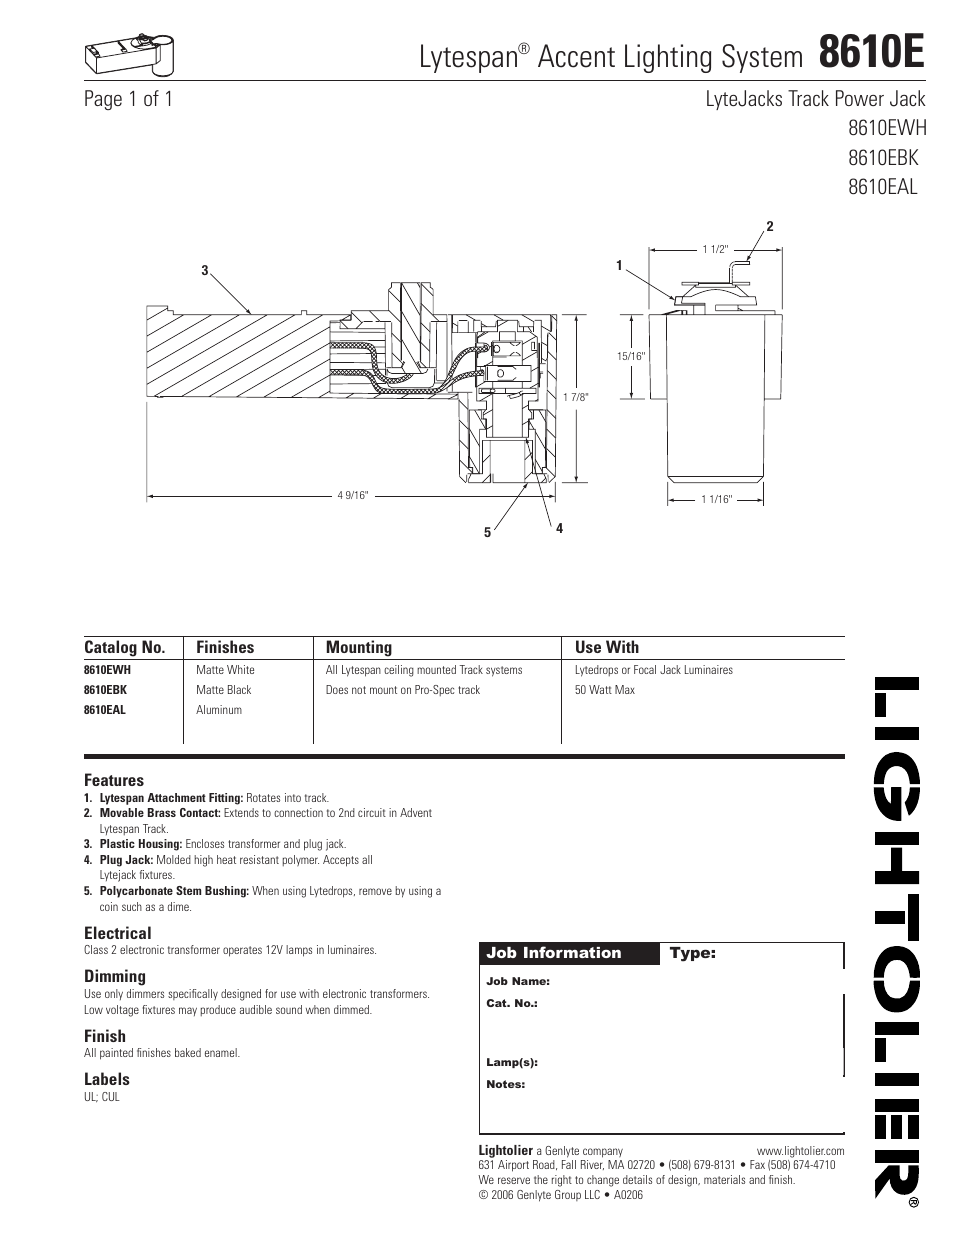 lightolier lytespan accent lighting system 8610e page1 lightolier lytespan accent lighting system 8610e user manual 1 page